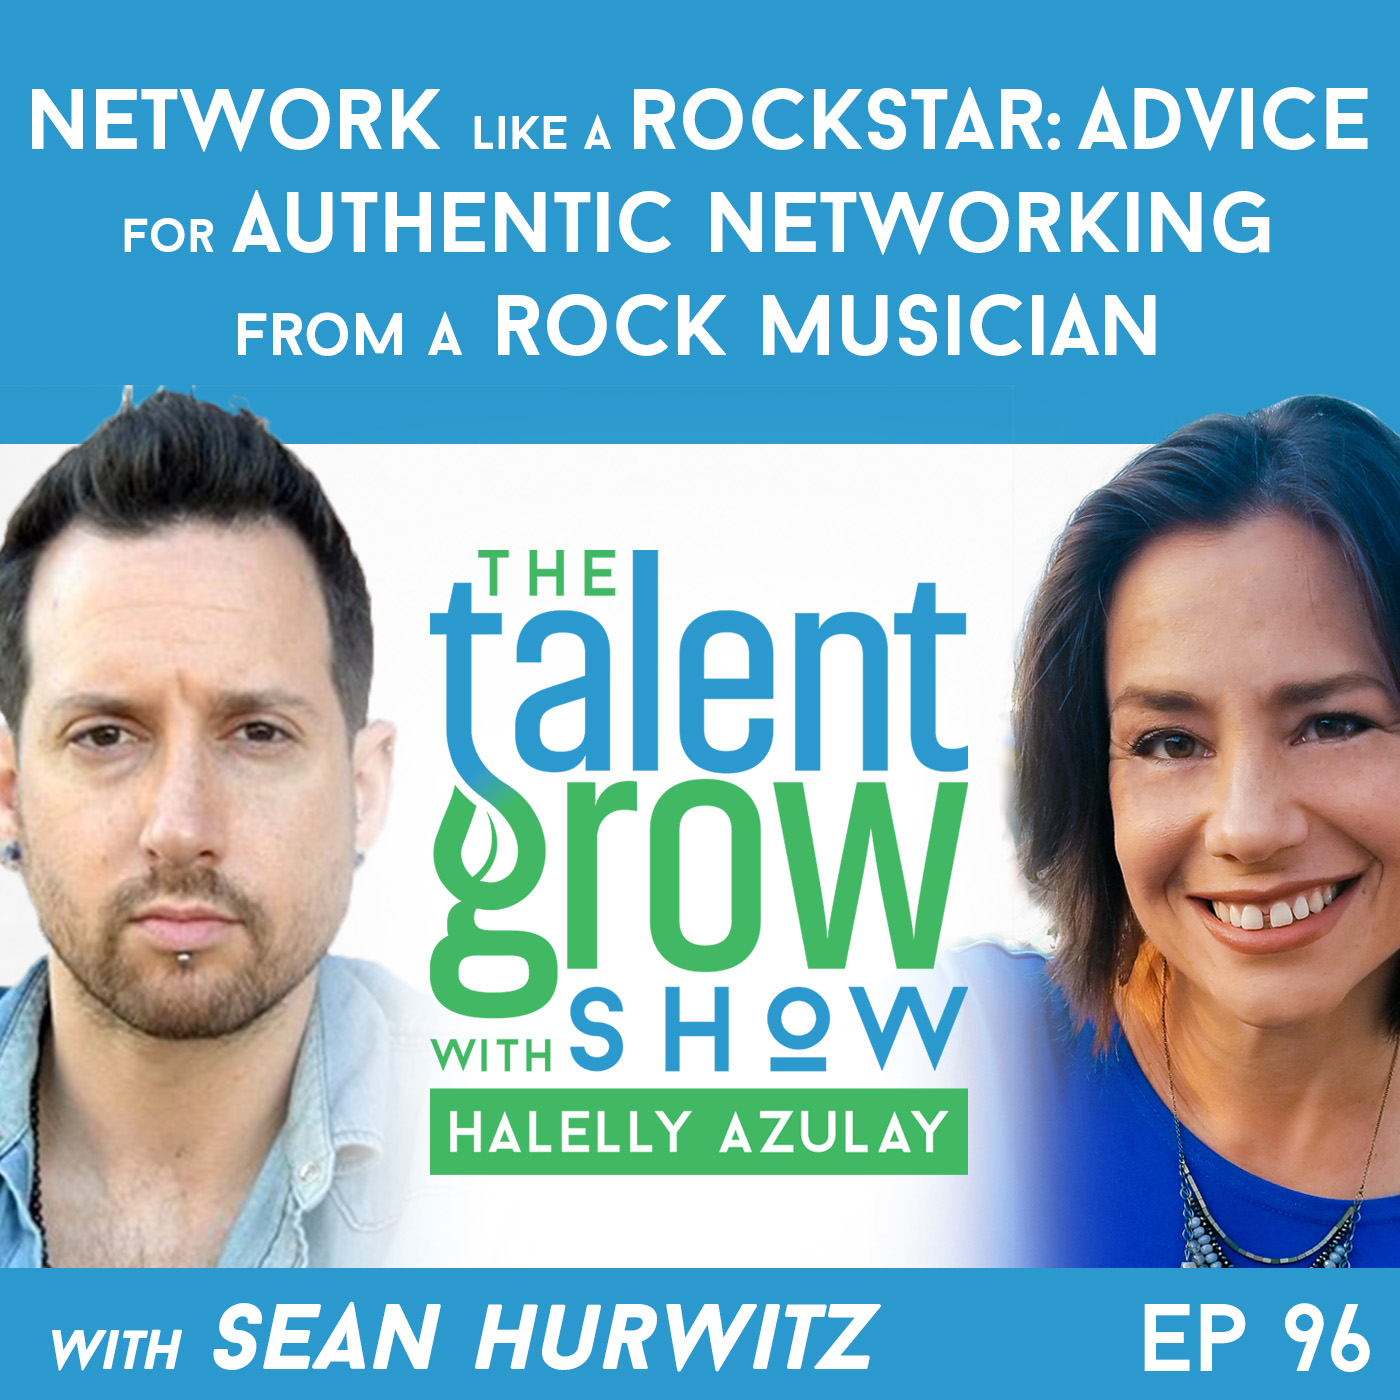 ep096 Sean Hurwitz Networking Rockstar TalentGrow Show with Halelly Azulay